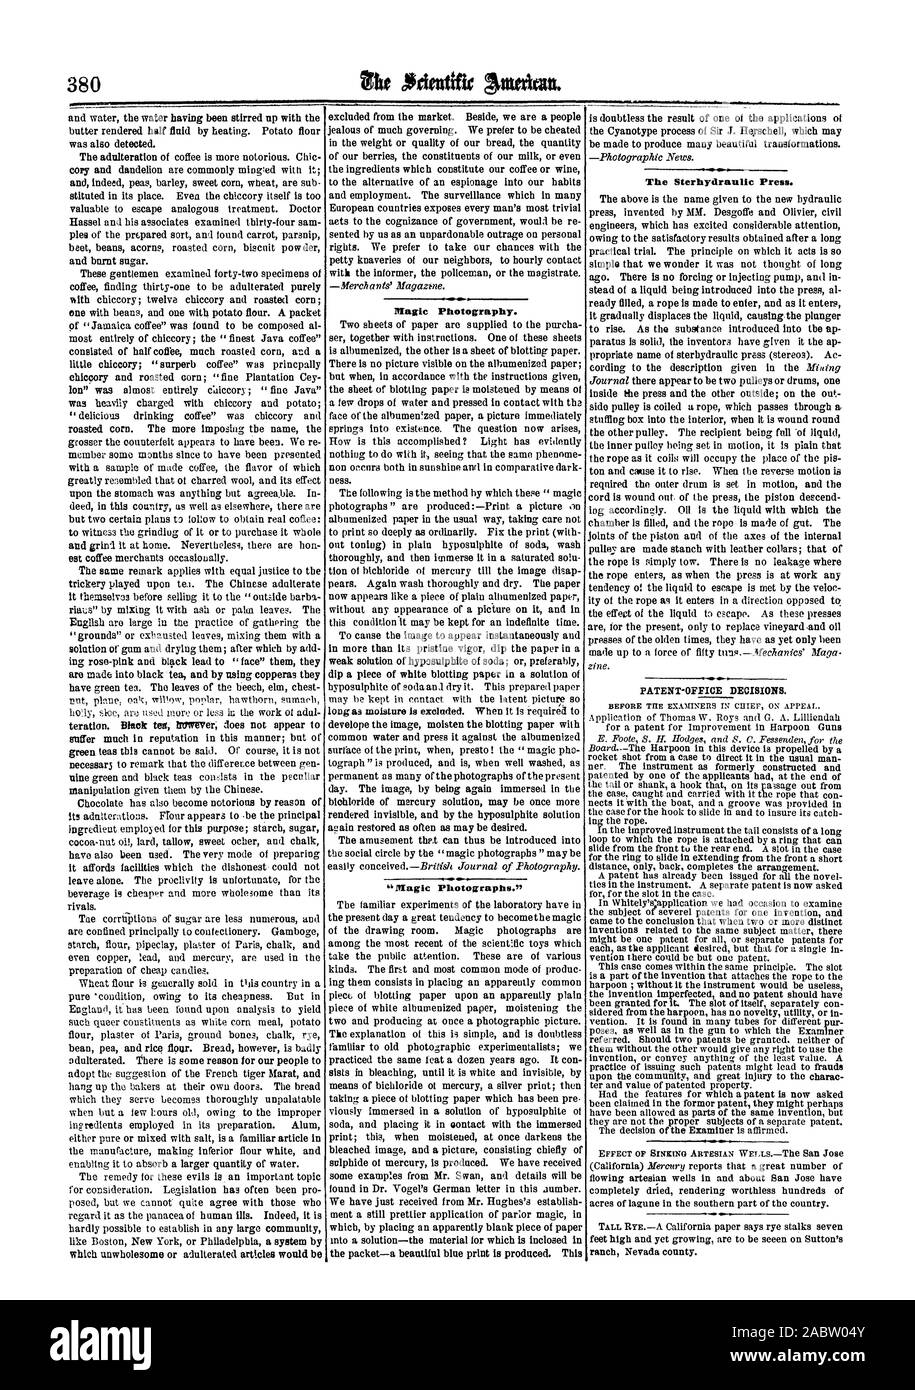 for consideration. Legislation has often been pro- found in Dr. Vogel's German letter in this dumber. posed but we cannot quite agree with those who We have just received from Mr. Hughes's establish regard it as the panacea of human ills. Indeed it is went a still prettier application of par:or magic in hardly possible to establish in any large community which by placing an apparently blank piece of paper like Boston New York or Philadelphia a system by into a solution—the material for which is inclosed in feet high and yet growing are to be seeen on Sutton's ranch Nevada county., scientific Stock Photo